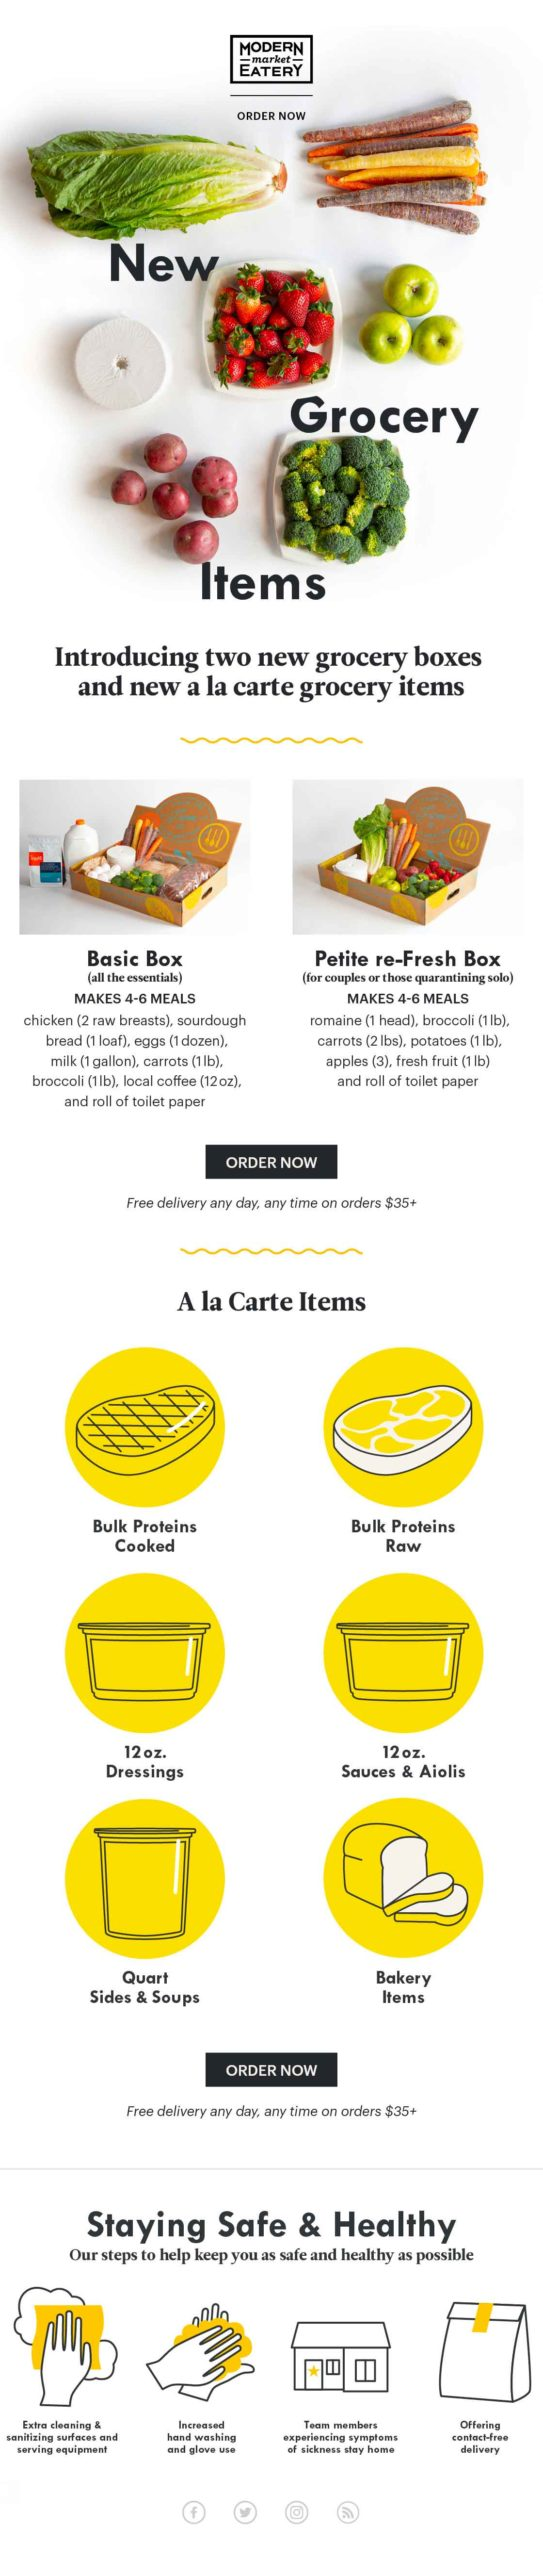 Modern Market: Grocery Choices email